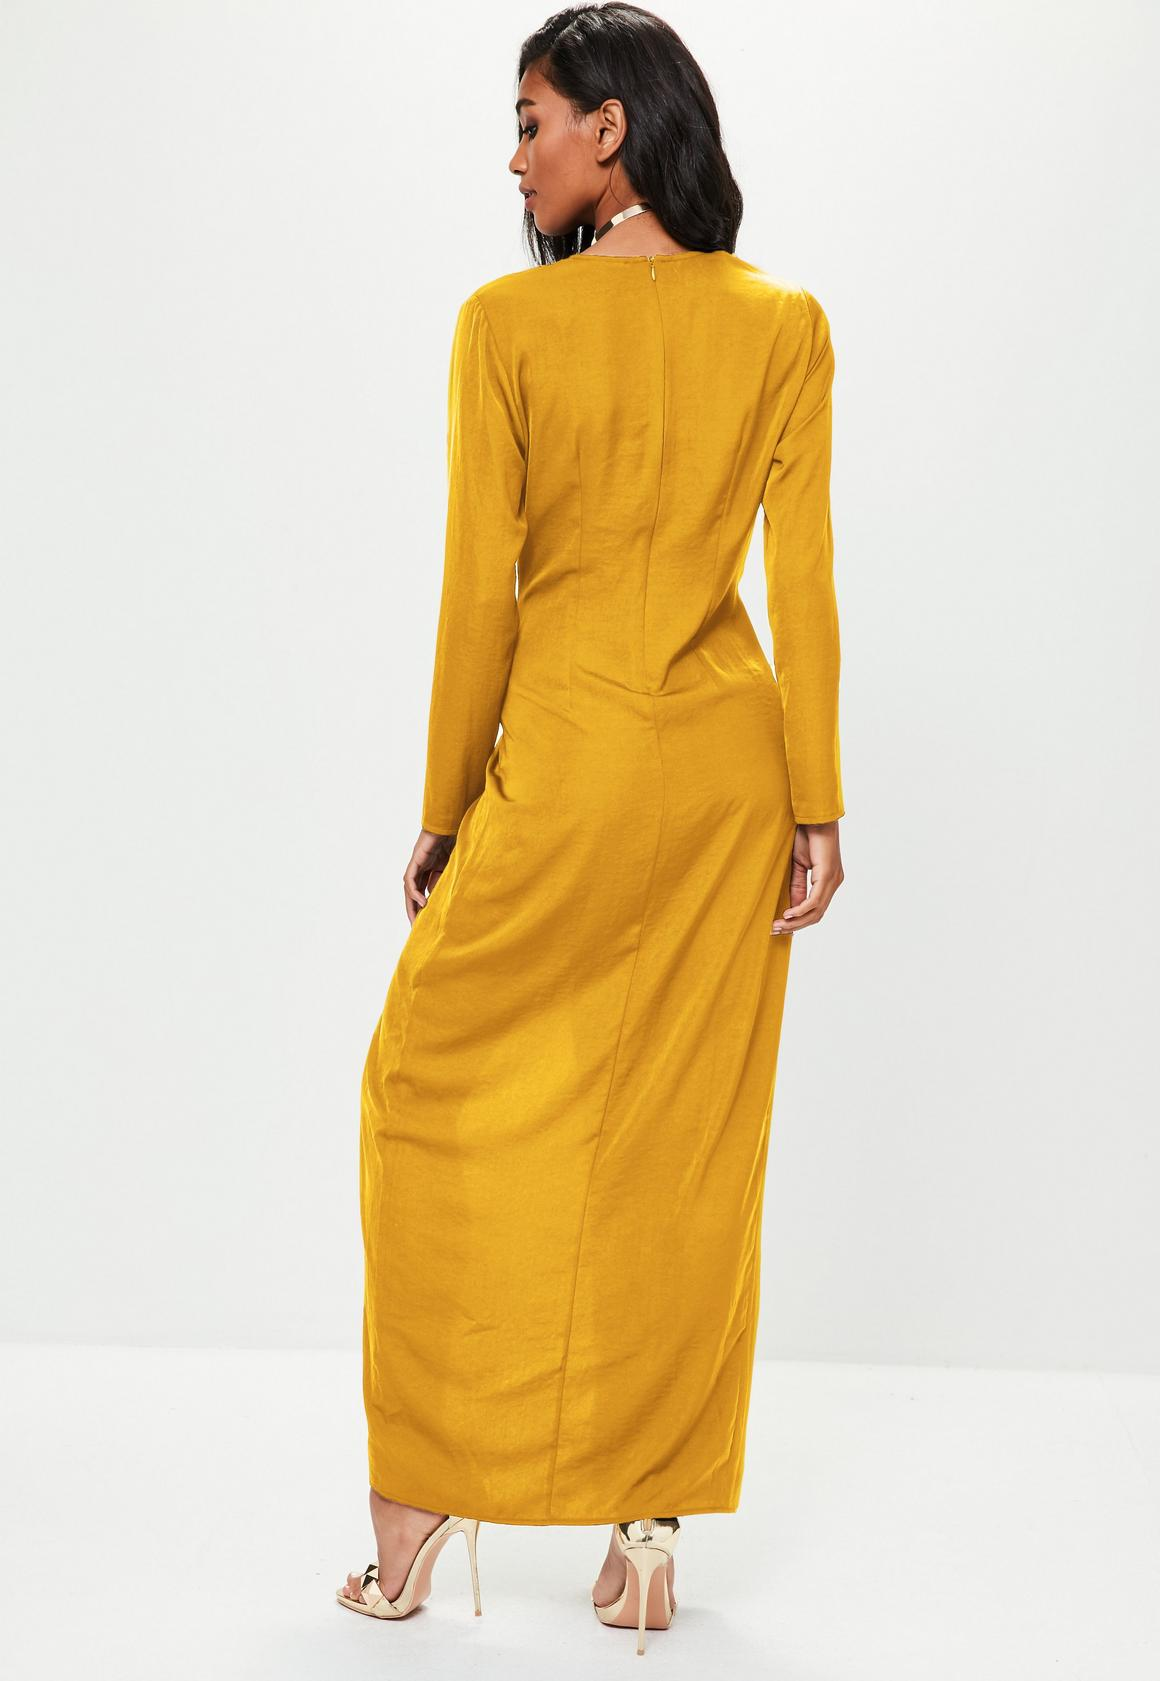 da0bf1c353ba Missguided - Mustard Yellow Wrap Front Maxi Dress